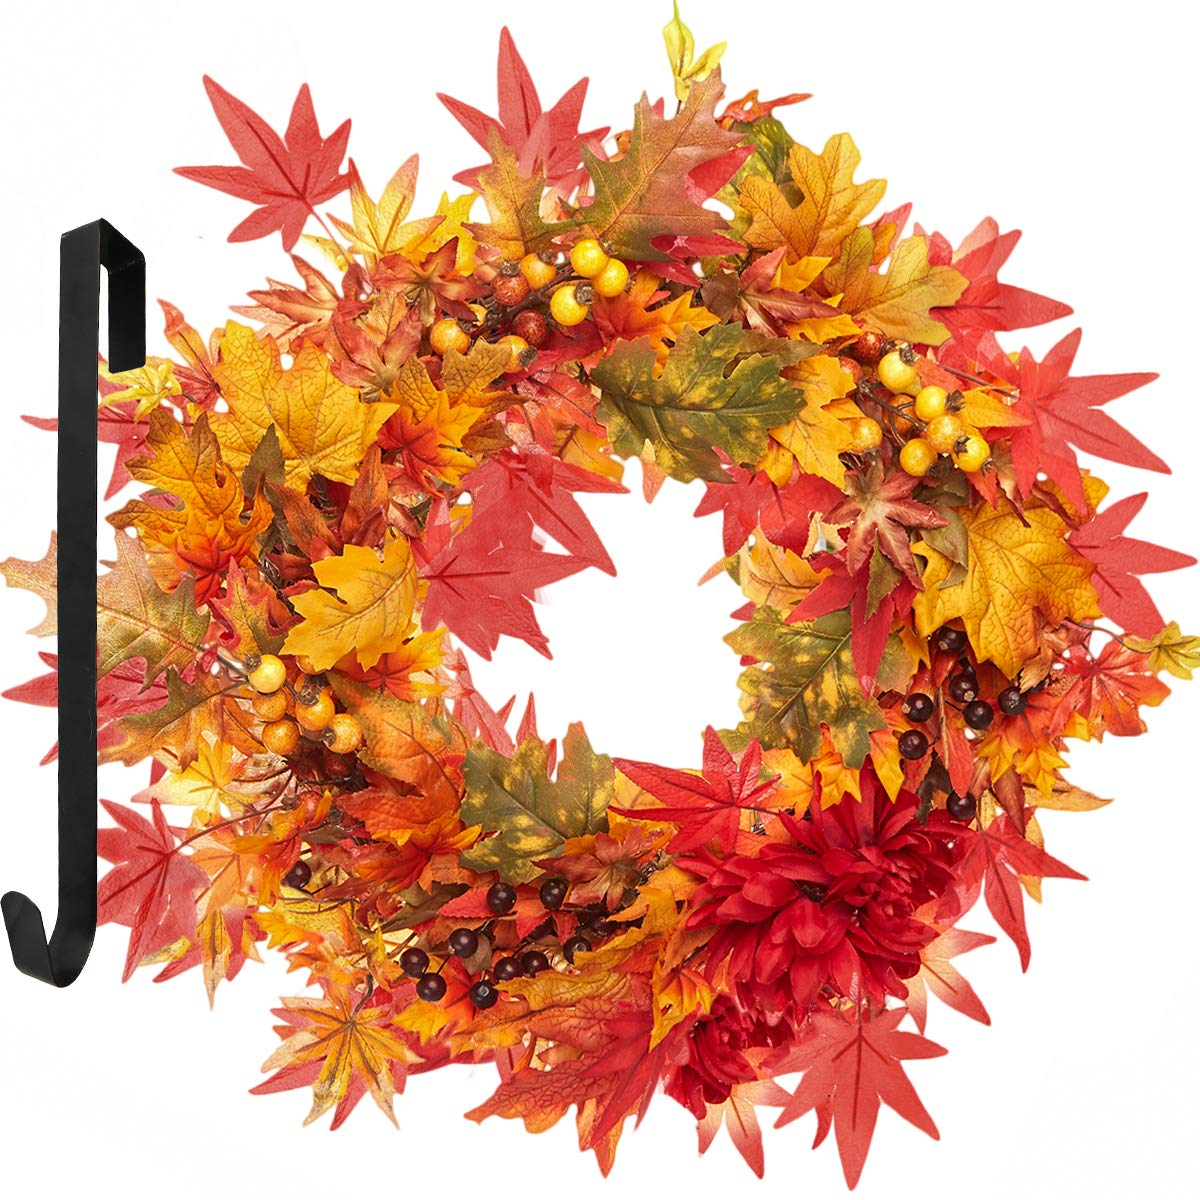 LIFEFAIR Fall Wreath for Front Door with Autumn Harvest Maple Leaf and Berries, 22 Inches Fall Door Wreath,Berry Wreath,The Wreath Hanger Included by LIFEFAIR